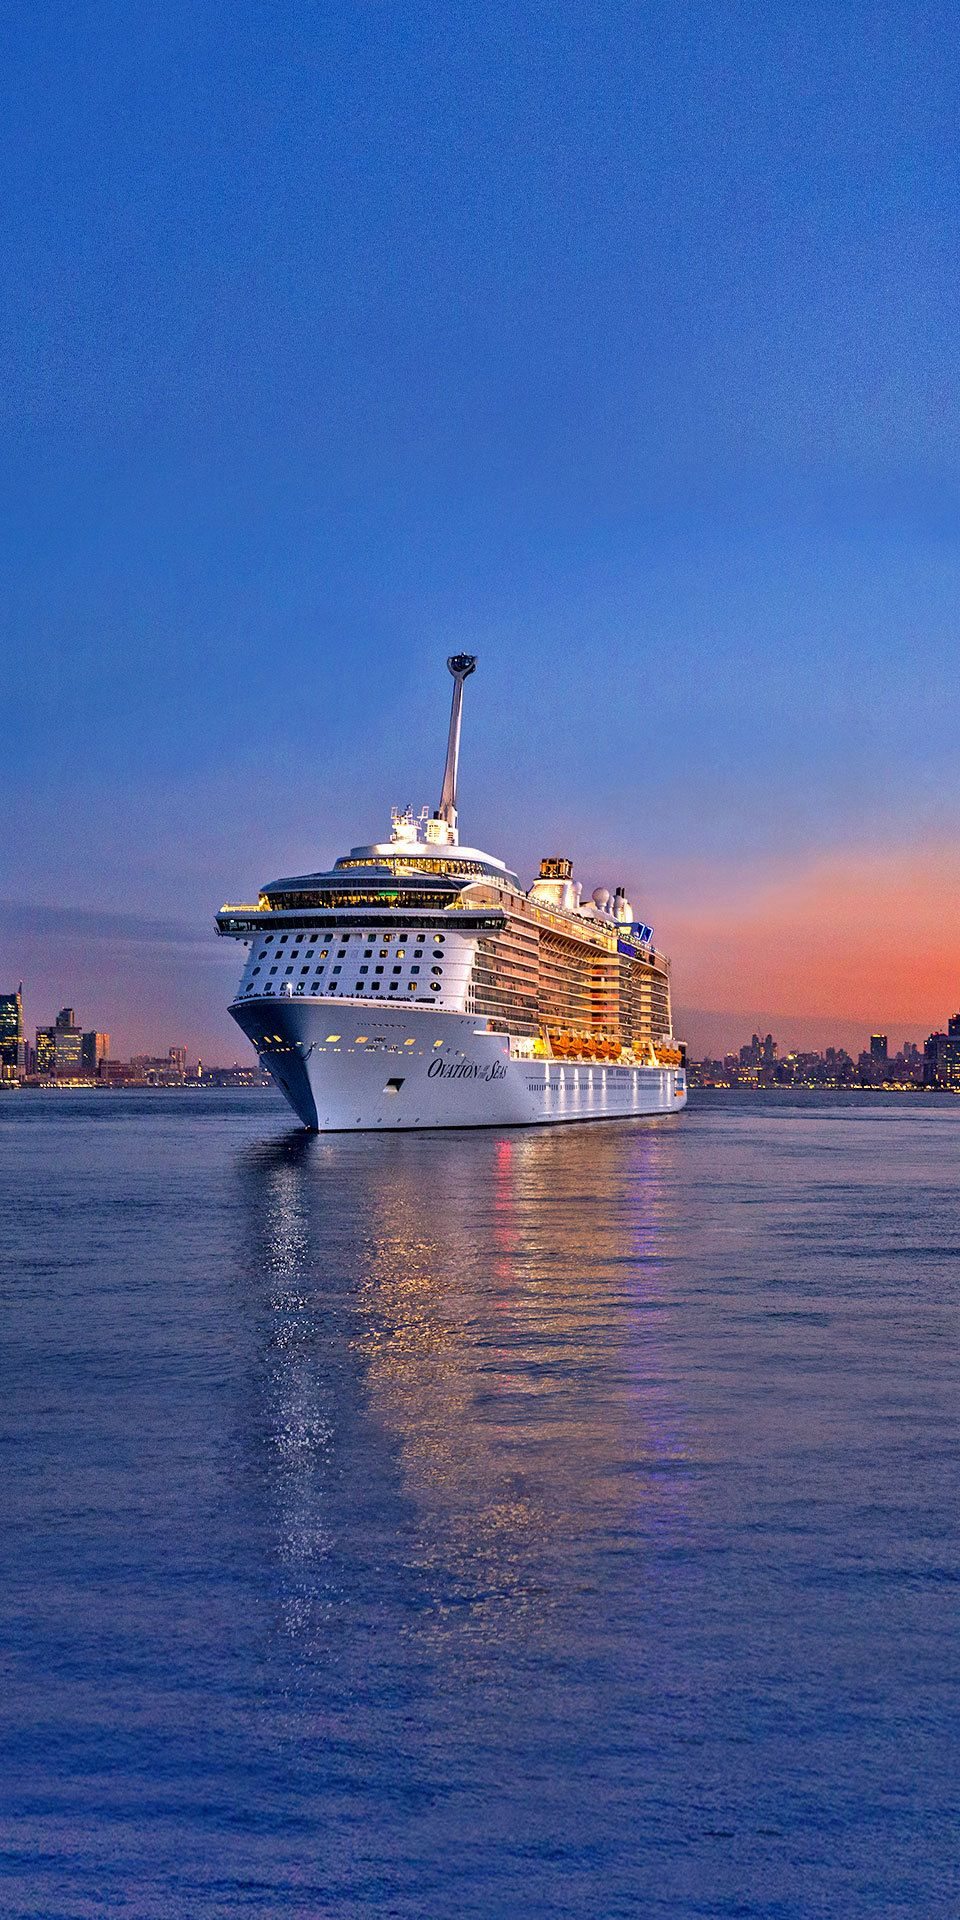 Ovation Of The Seas Leave It To Royal Caribbean To Raise The Bar On Adventure North Star Elevates Y Cruise Ship Royal Caribbean Ships Royal Caribbean Cruise